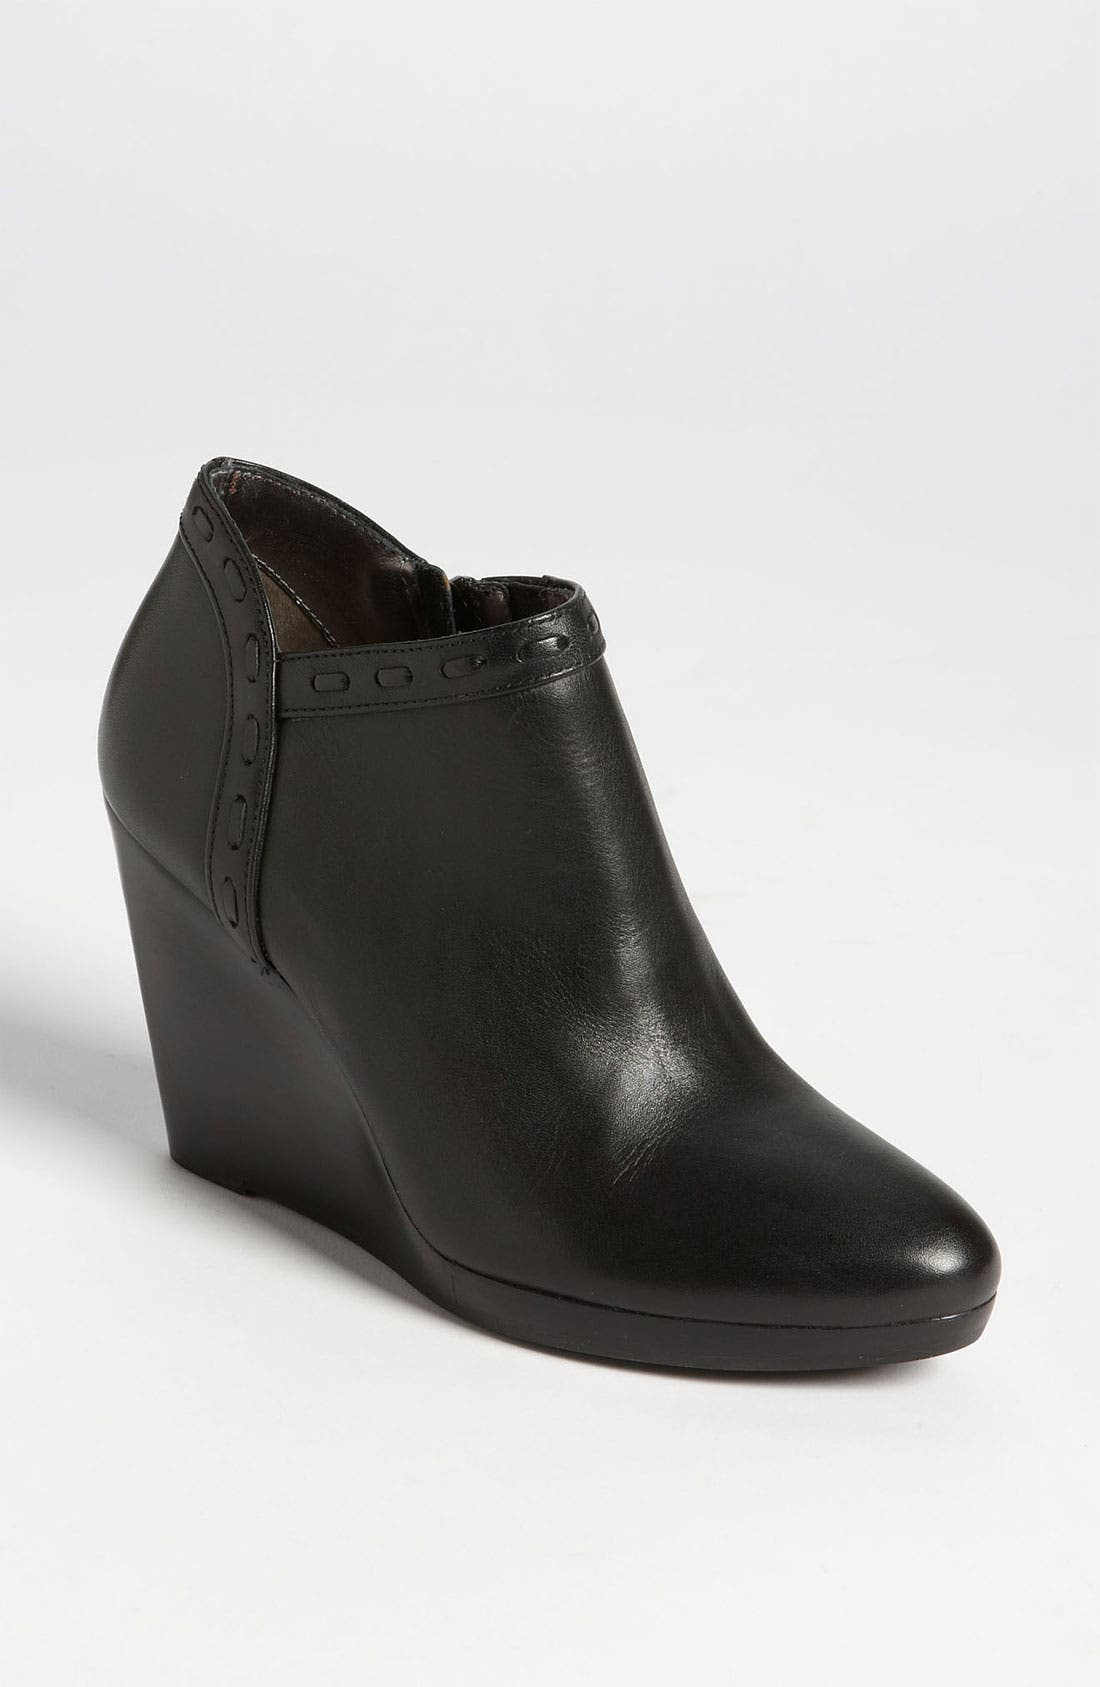 Alternate Image 1 Selected - Jack Rogers 'Churchill' Platform Bootie